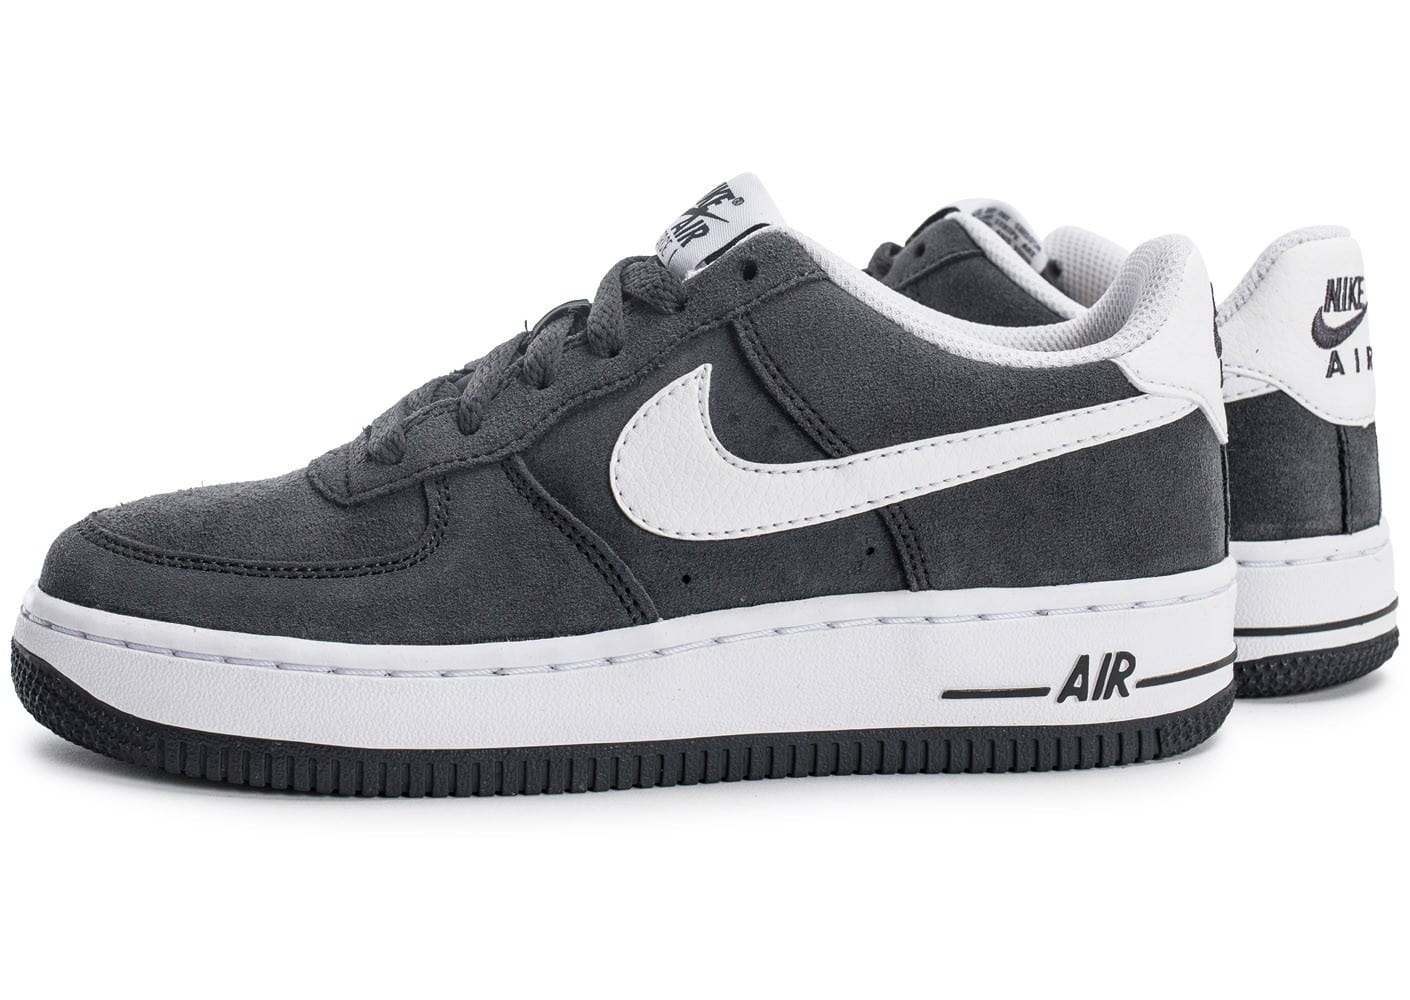 nike air force 1 suede junior grise chaussures toutes les baskets sold es chausport. Black Bedroom Furniture Sets. Home Design Ideas